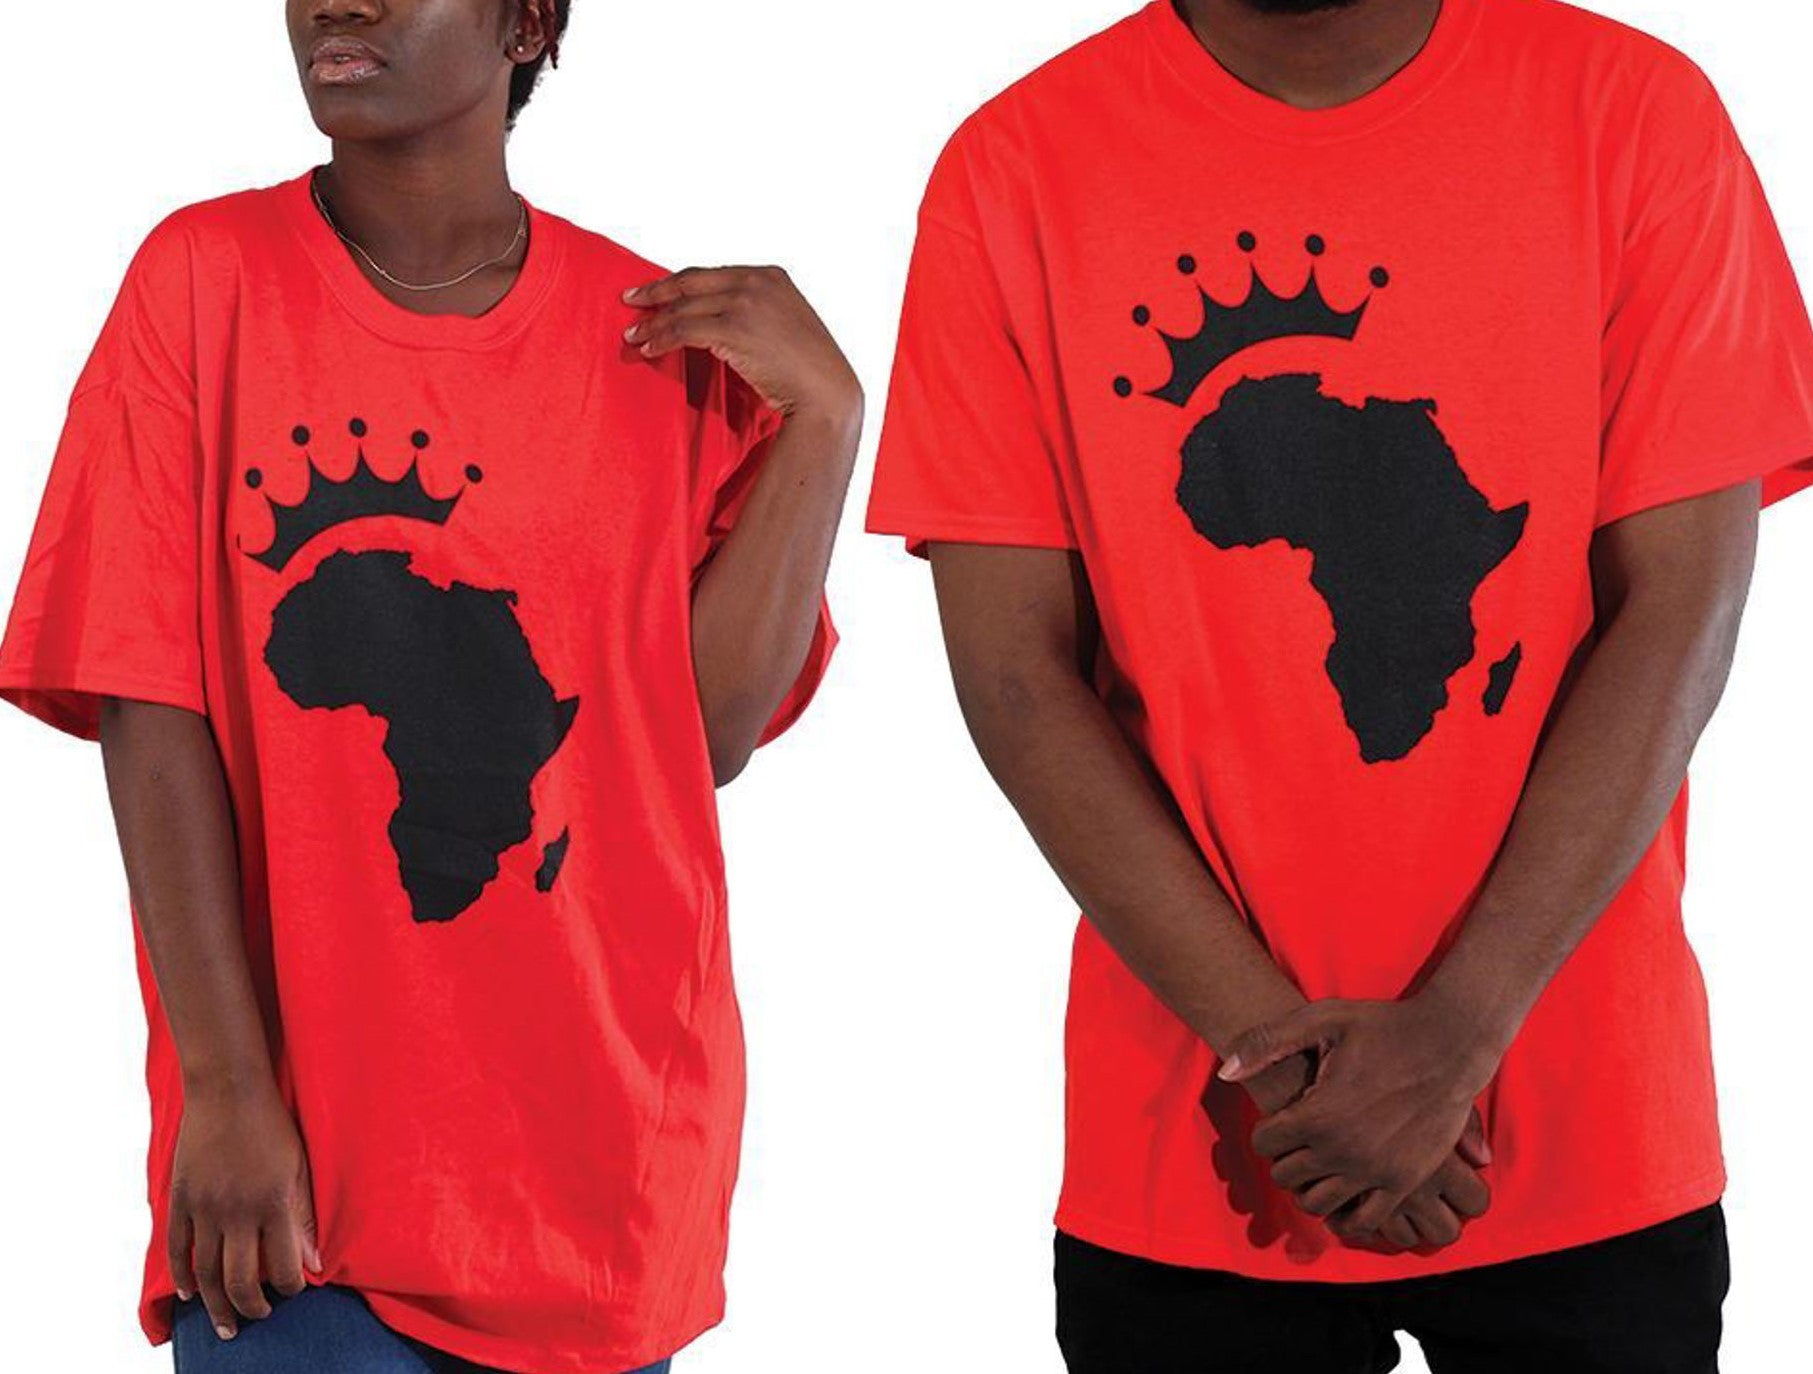 Unisex African Royalty T-Shirt King and Queen - Edy's Treasures